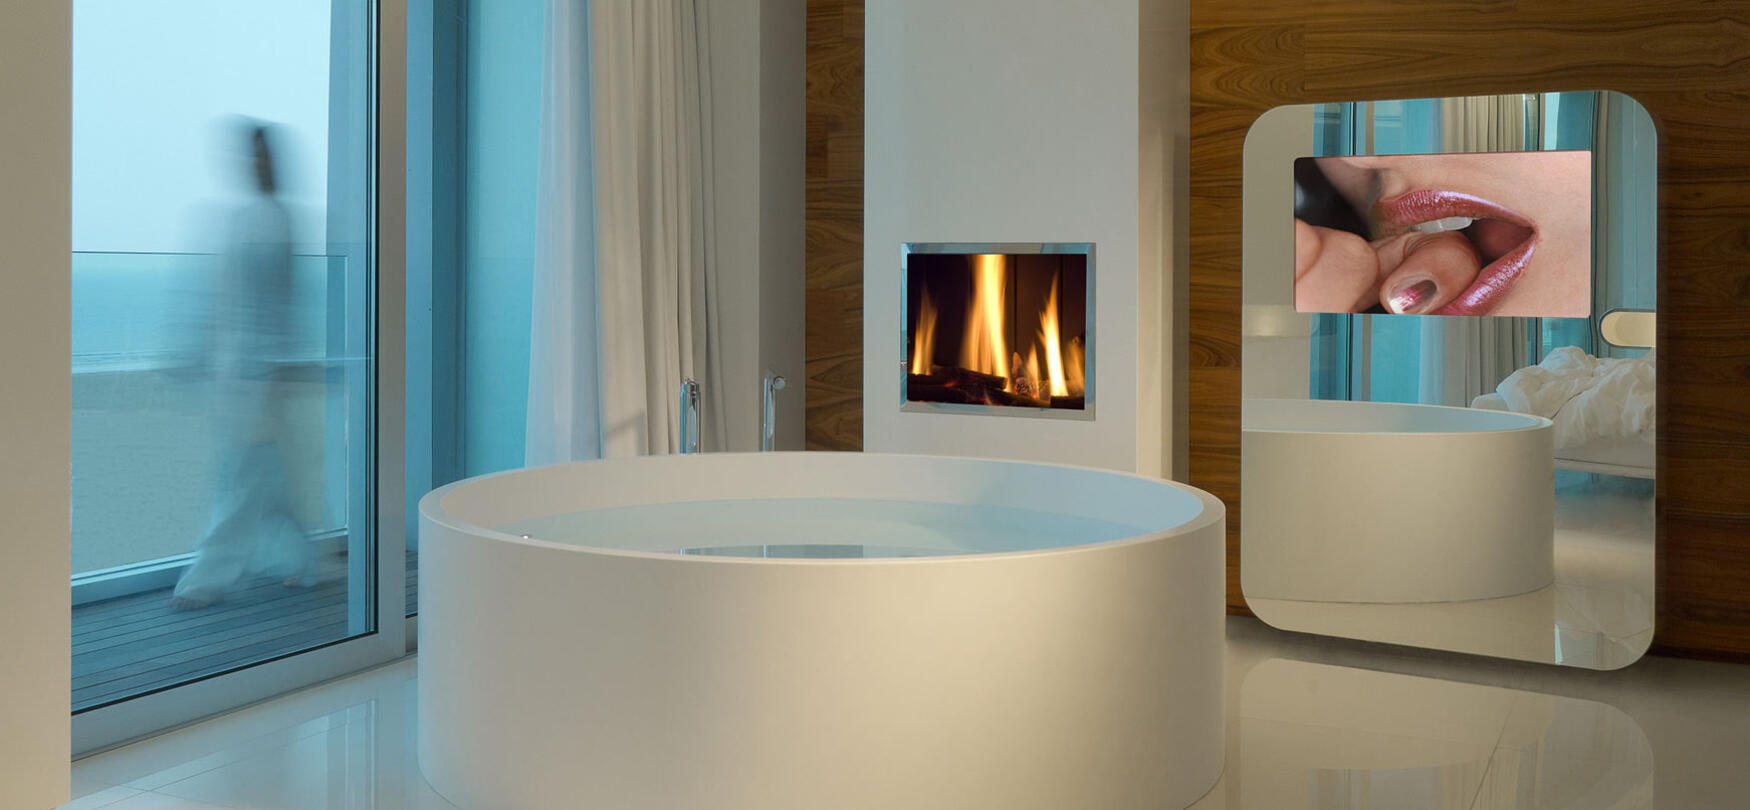 ambienthotels it camere-isuite 005